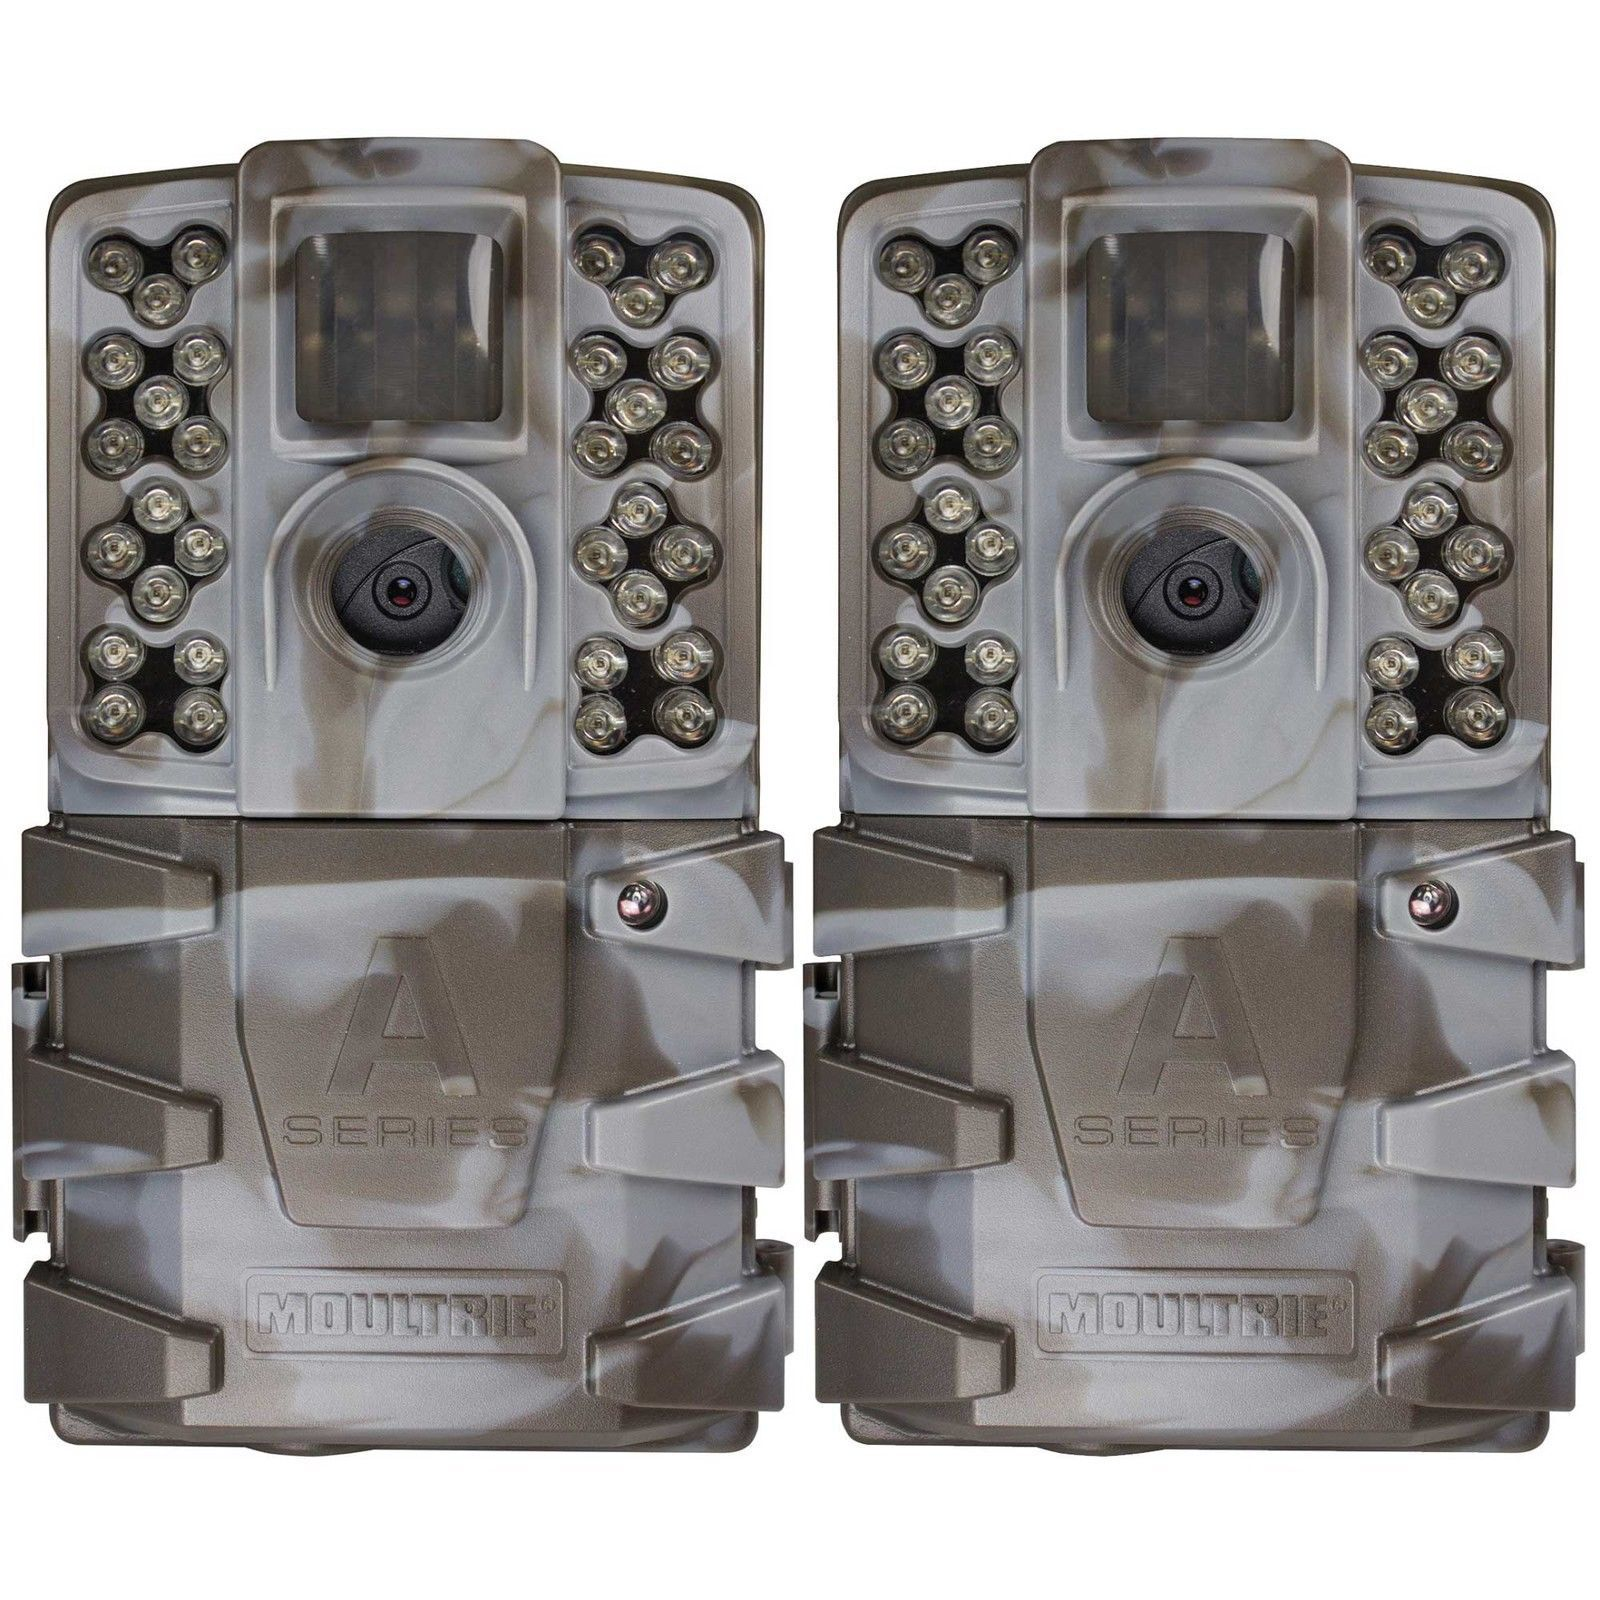 New 2017 Moultrie A-35 Infrared 14 MP Game Trail Camera 2 Ye